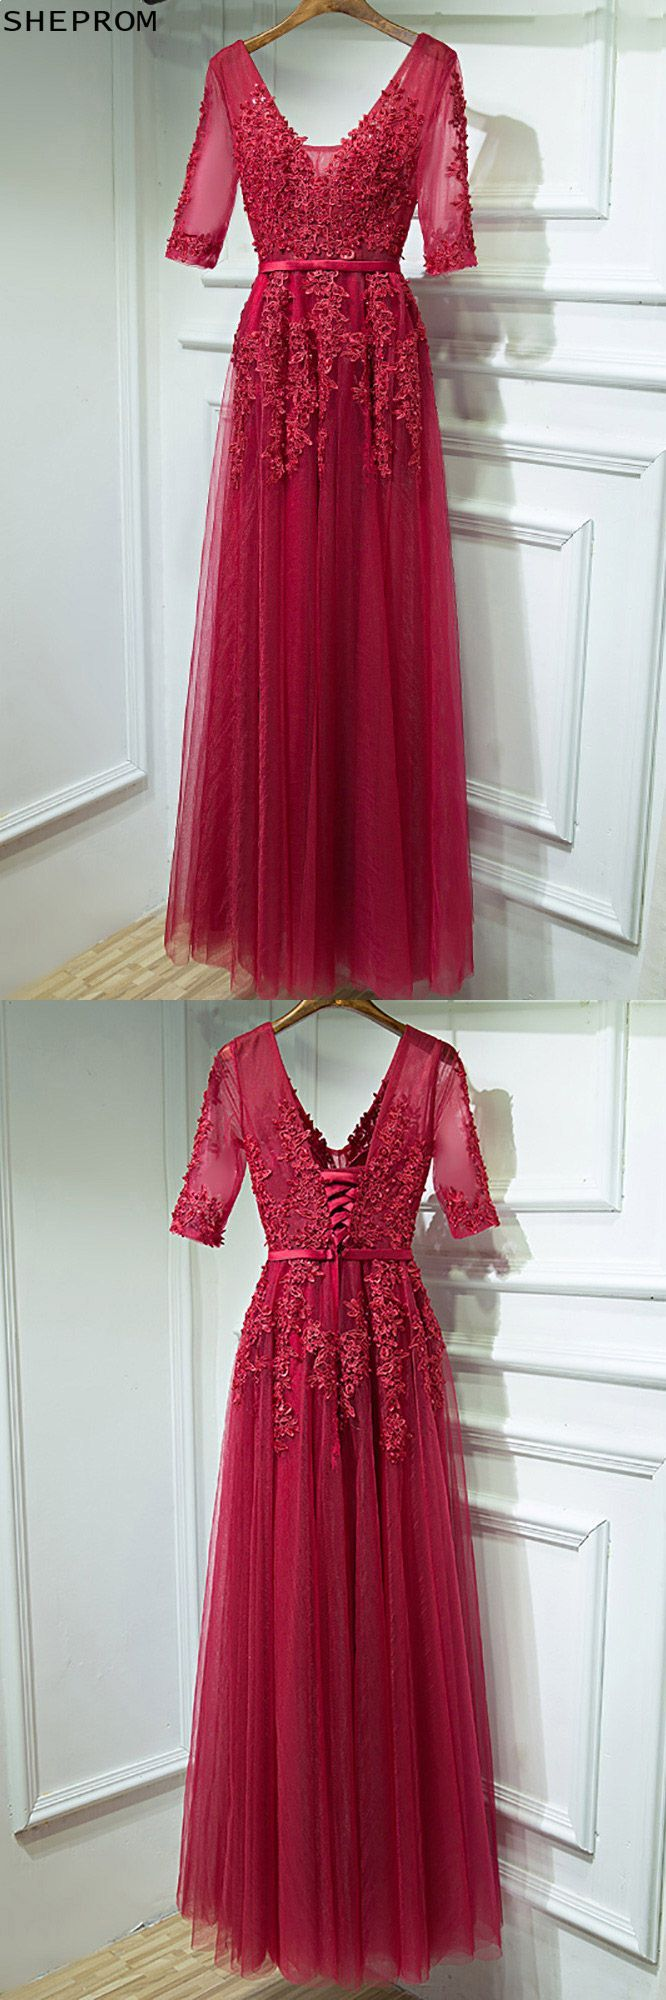 Burgundy vneck lace long party dress with half sleeves